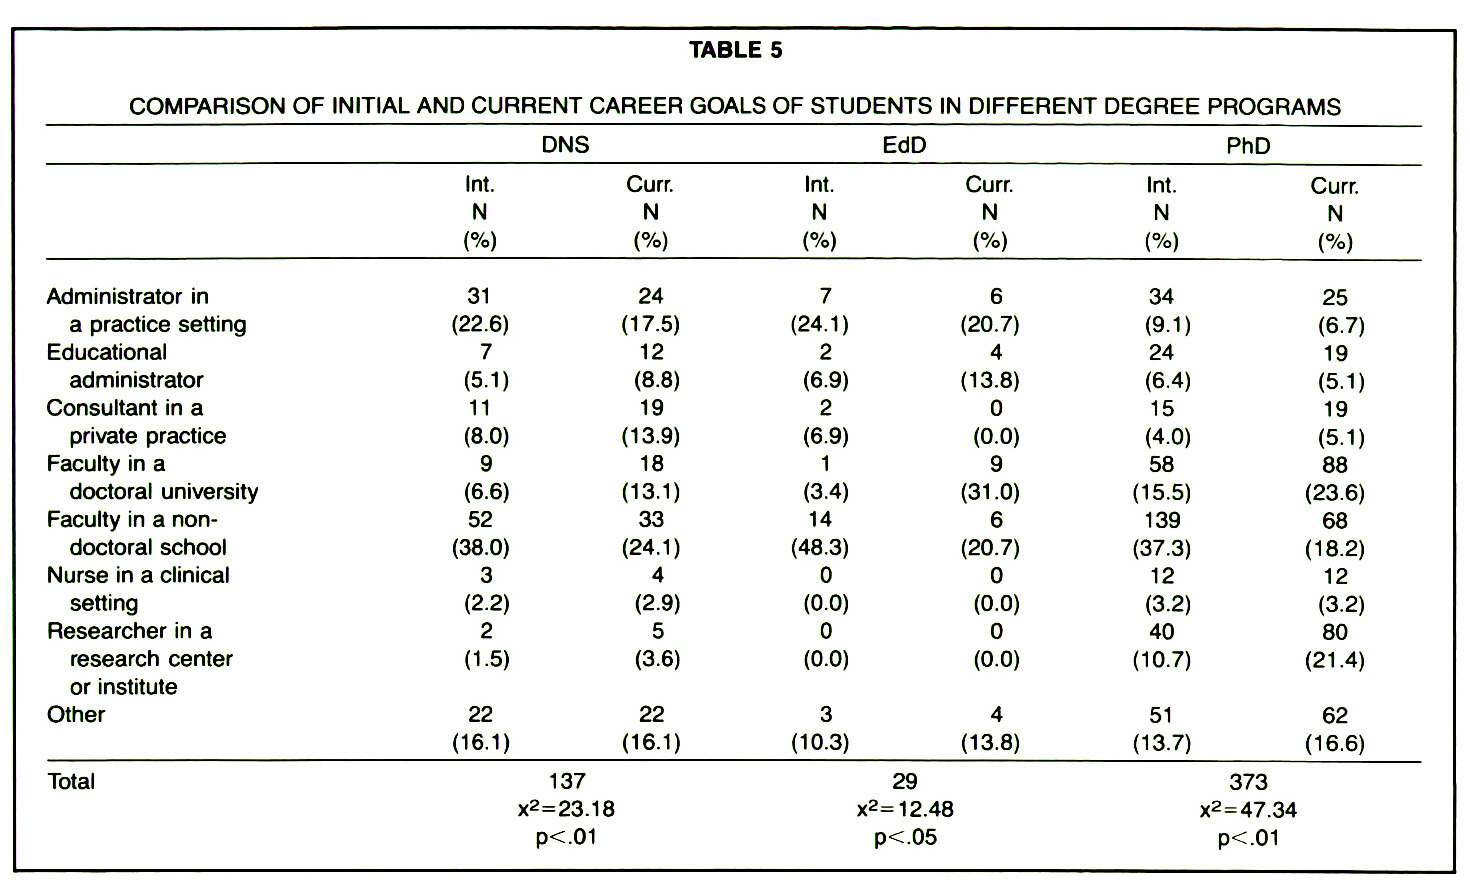 TABLE 5COMPARISON OF INITIAL AND CURRENT CAREER GOALS OF STUDENTS IN DIFFERENT DEGREE PROGRAMS